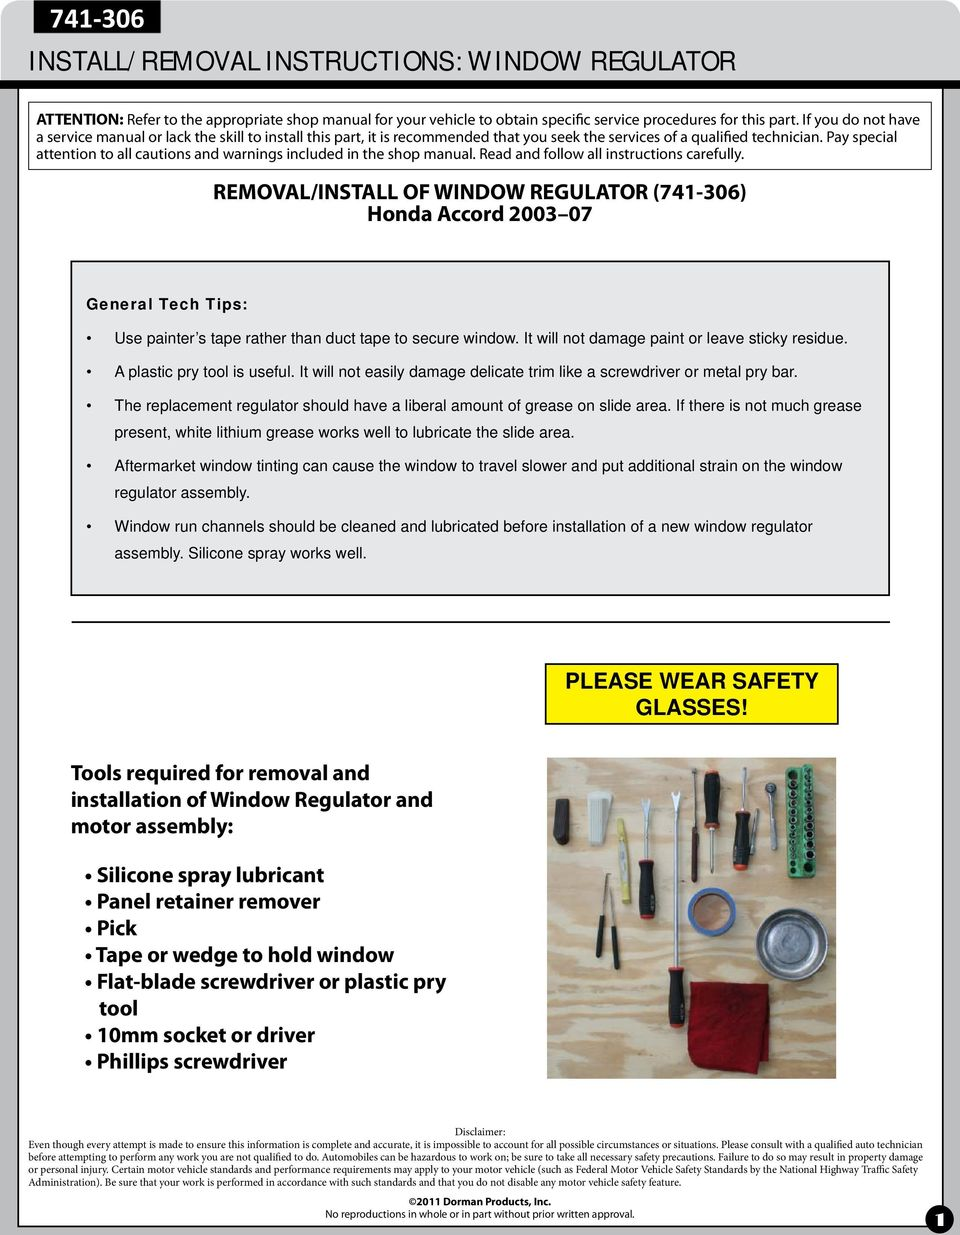 Install Removal Instructions Window Regulator Pdf 2007 Honda Crv Trailer Wiring Harness If There Is Not Much Grease Present White Lithium Works Well To Lubricate The